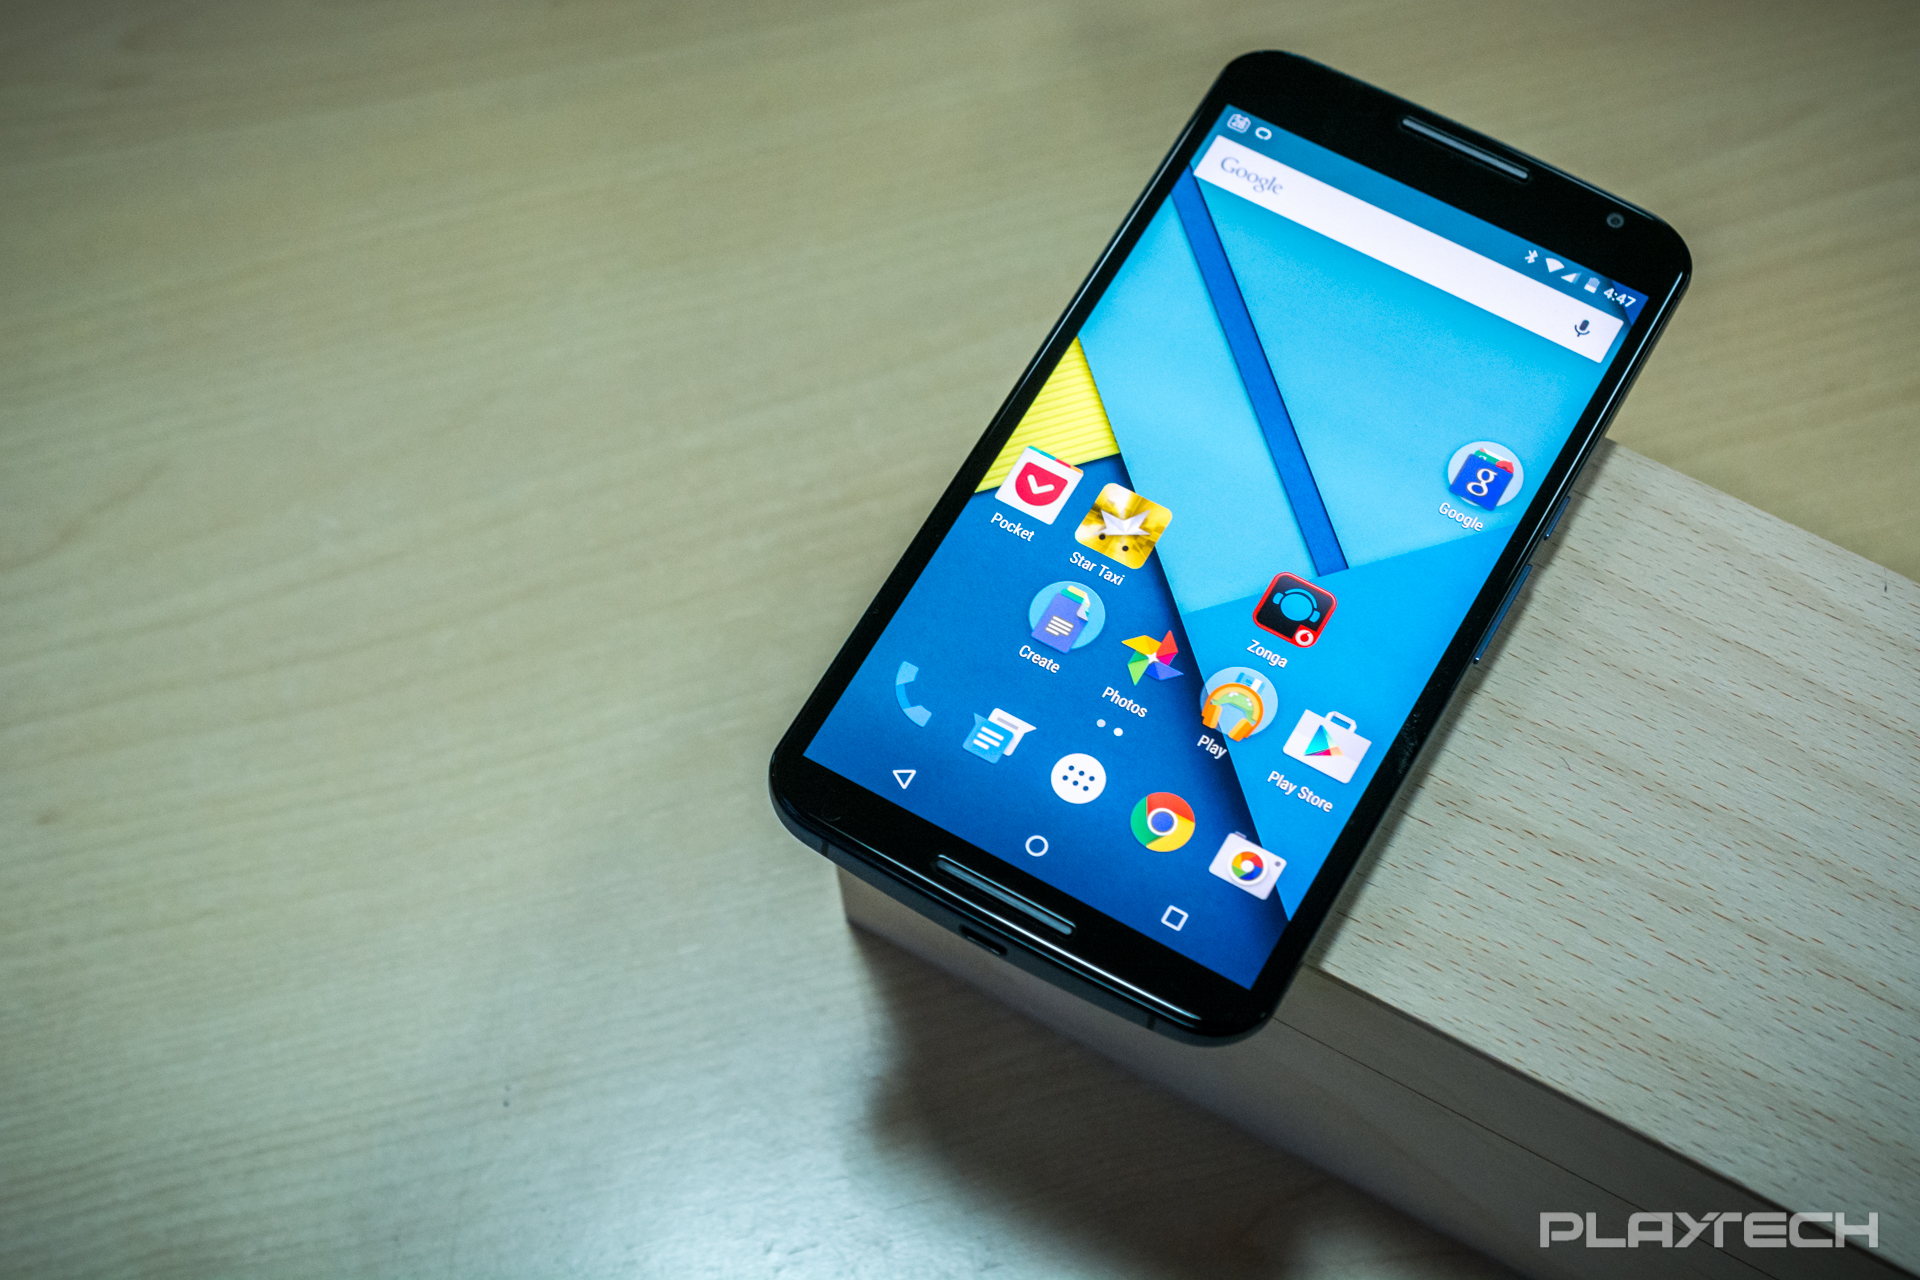 Motorola Nexus 6 in review Playtech (16)